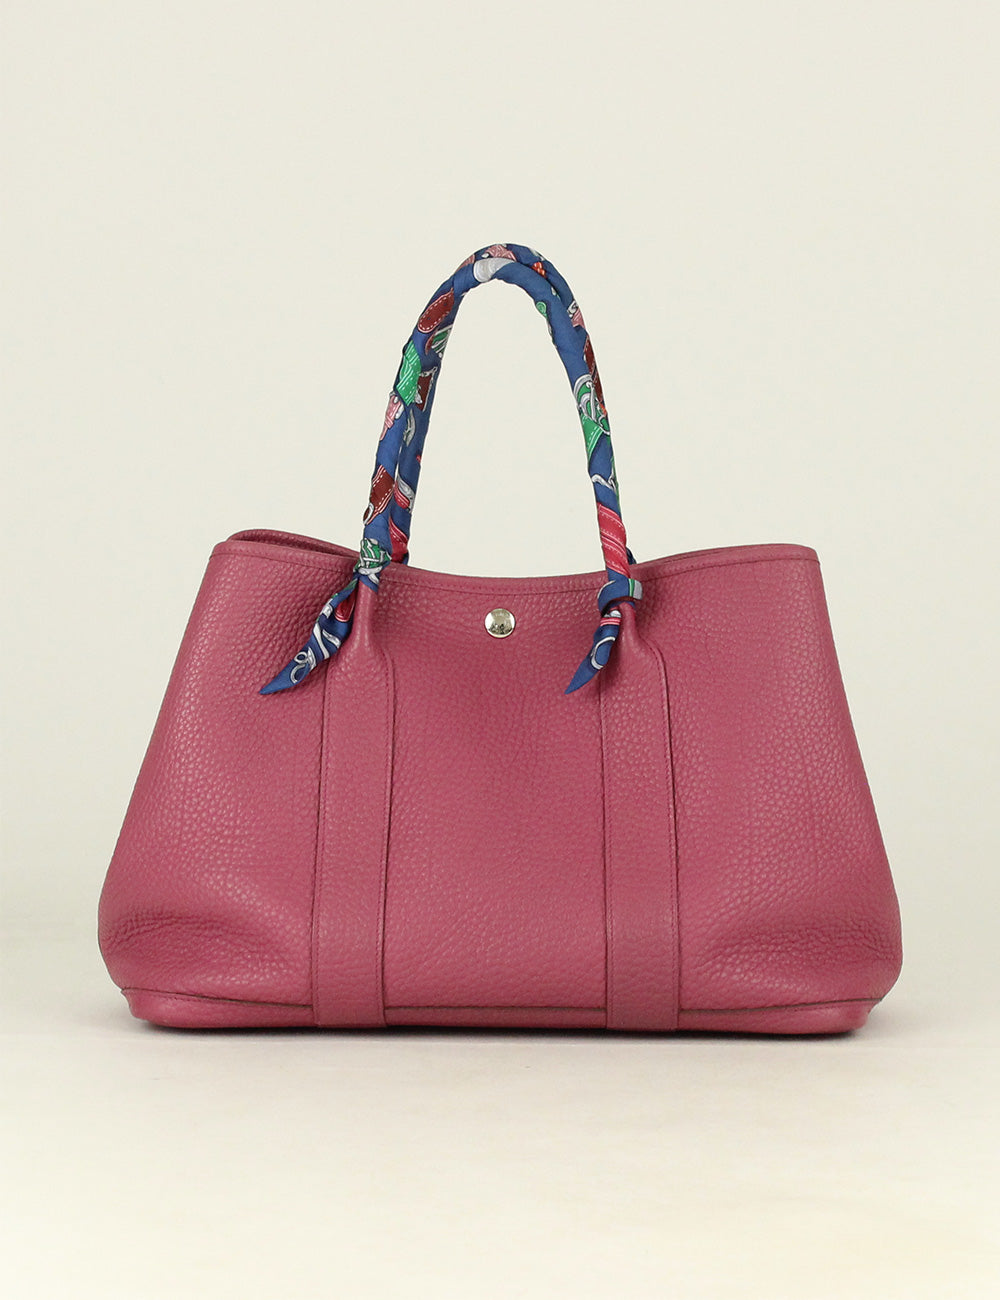 Hermes <br> Garden Party 36 Bag with Twilly